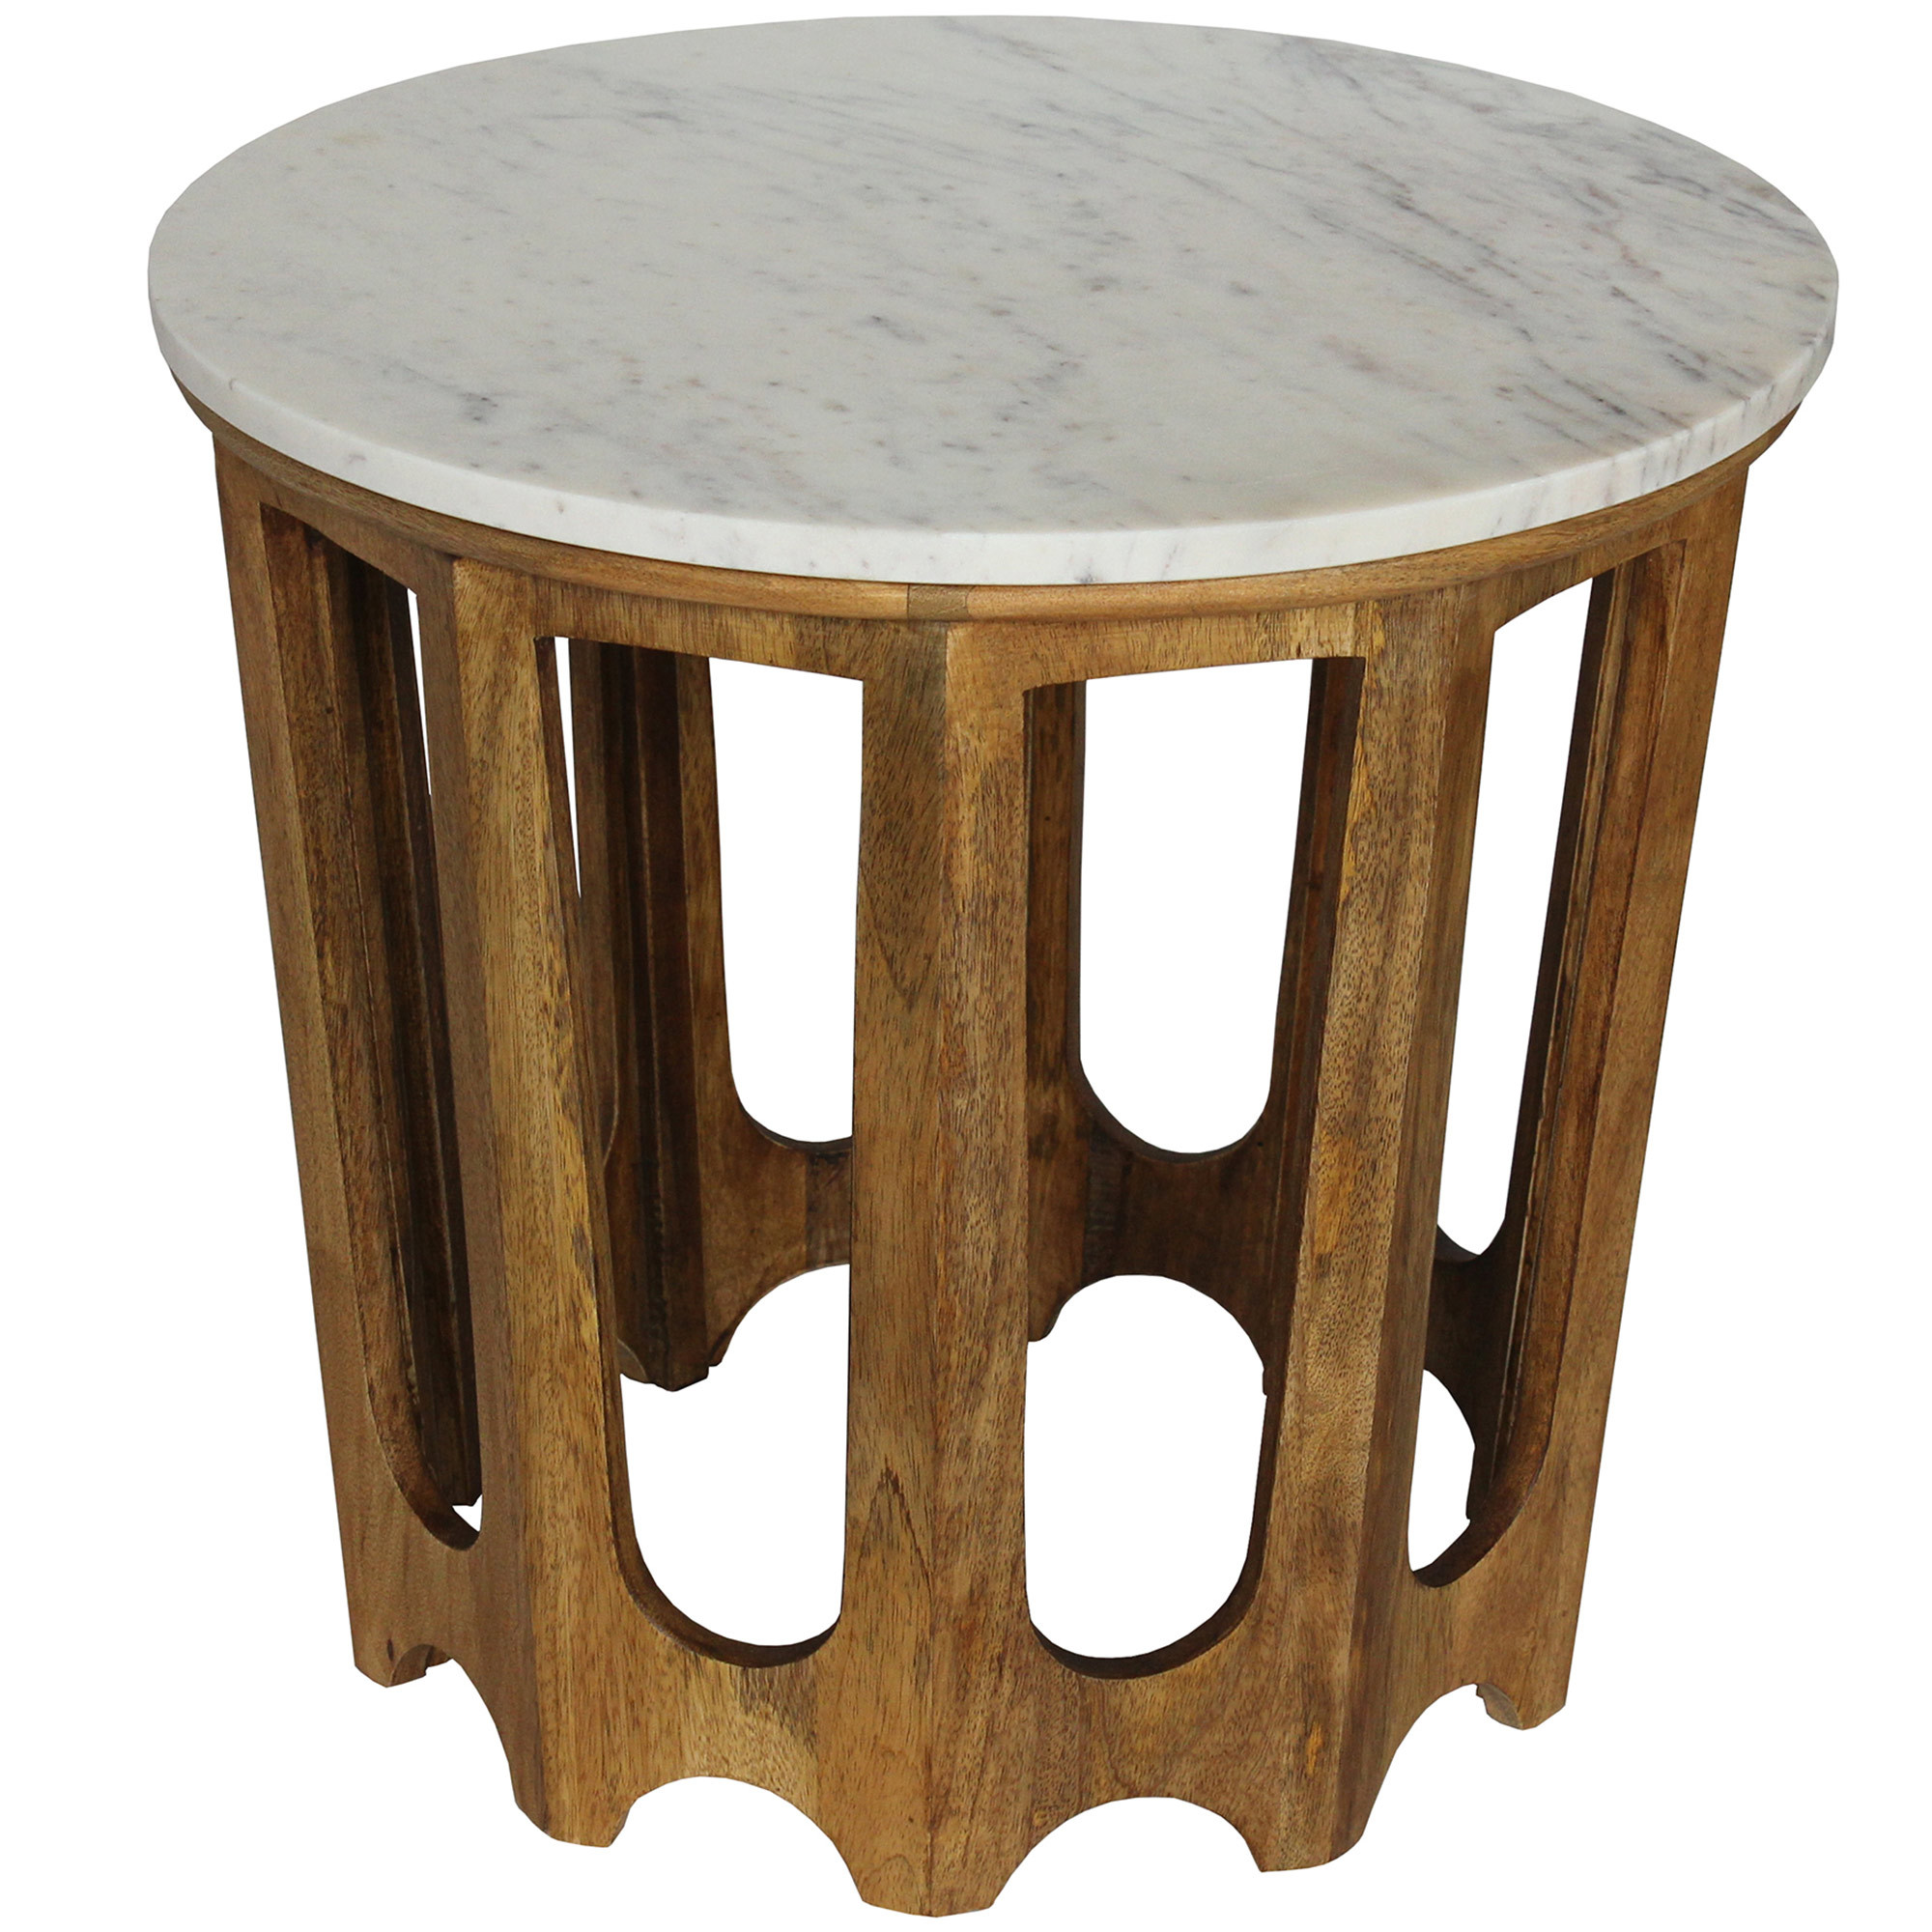 Light Walnut Cancun Marble Side Table Temple Webster # Muebles Dipay Cancun